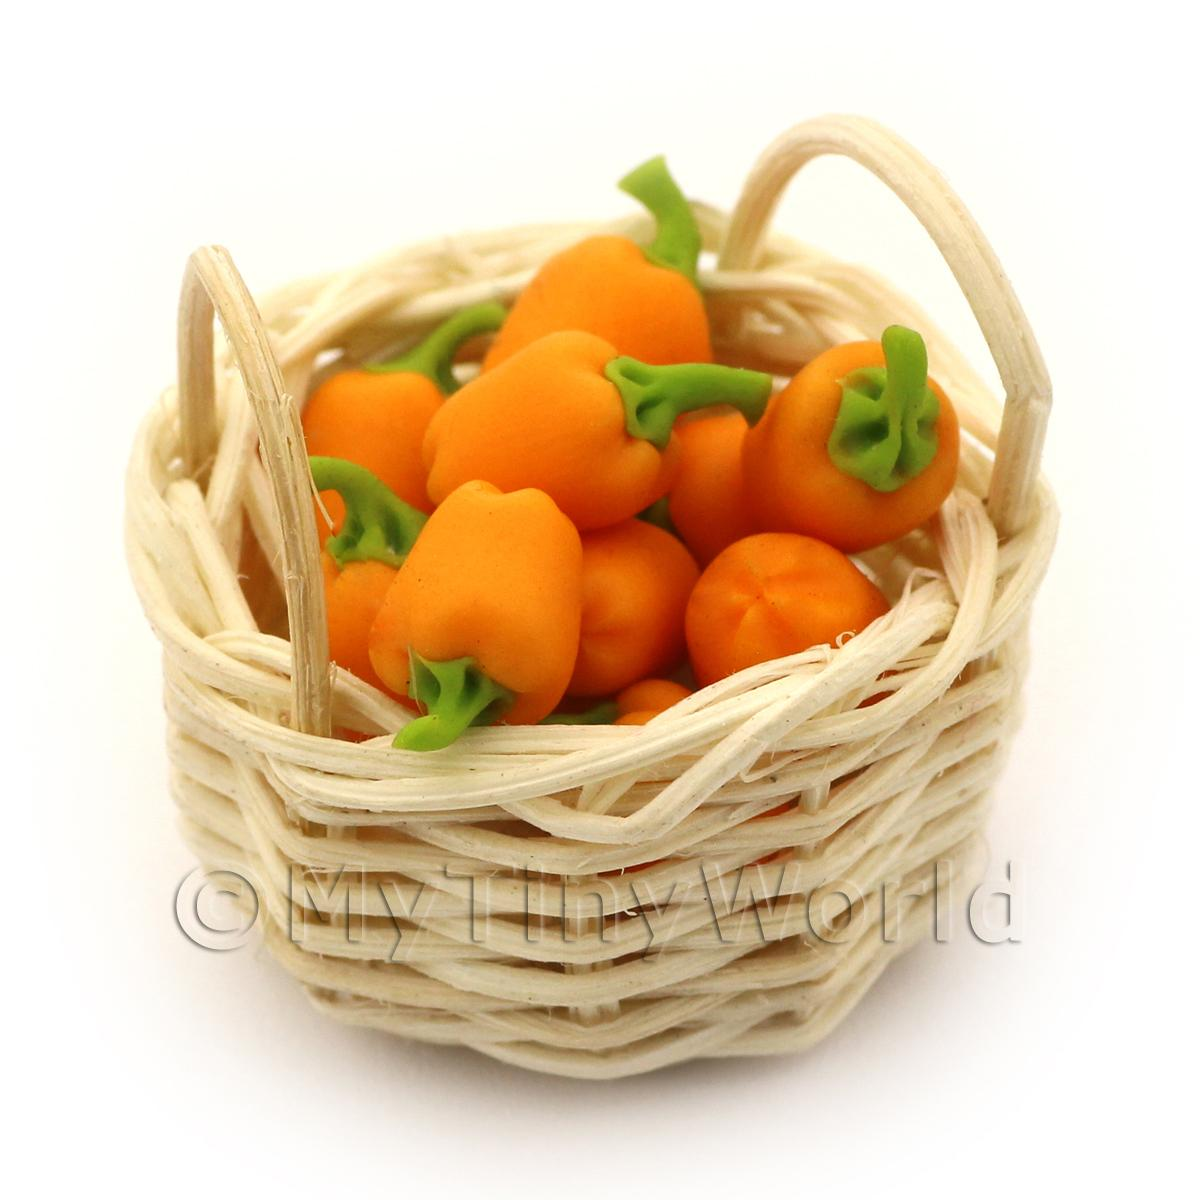 Dolls House Miniature Basket of Hand Made Orange Bell Peppers